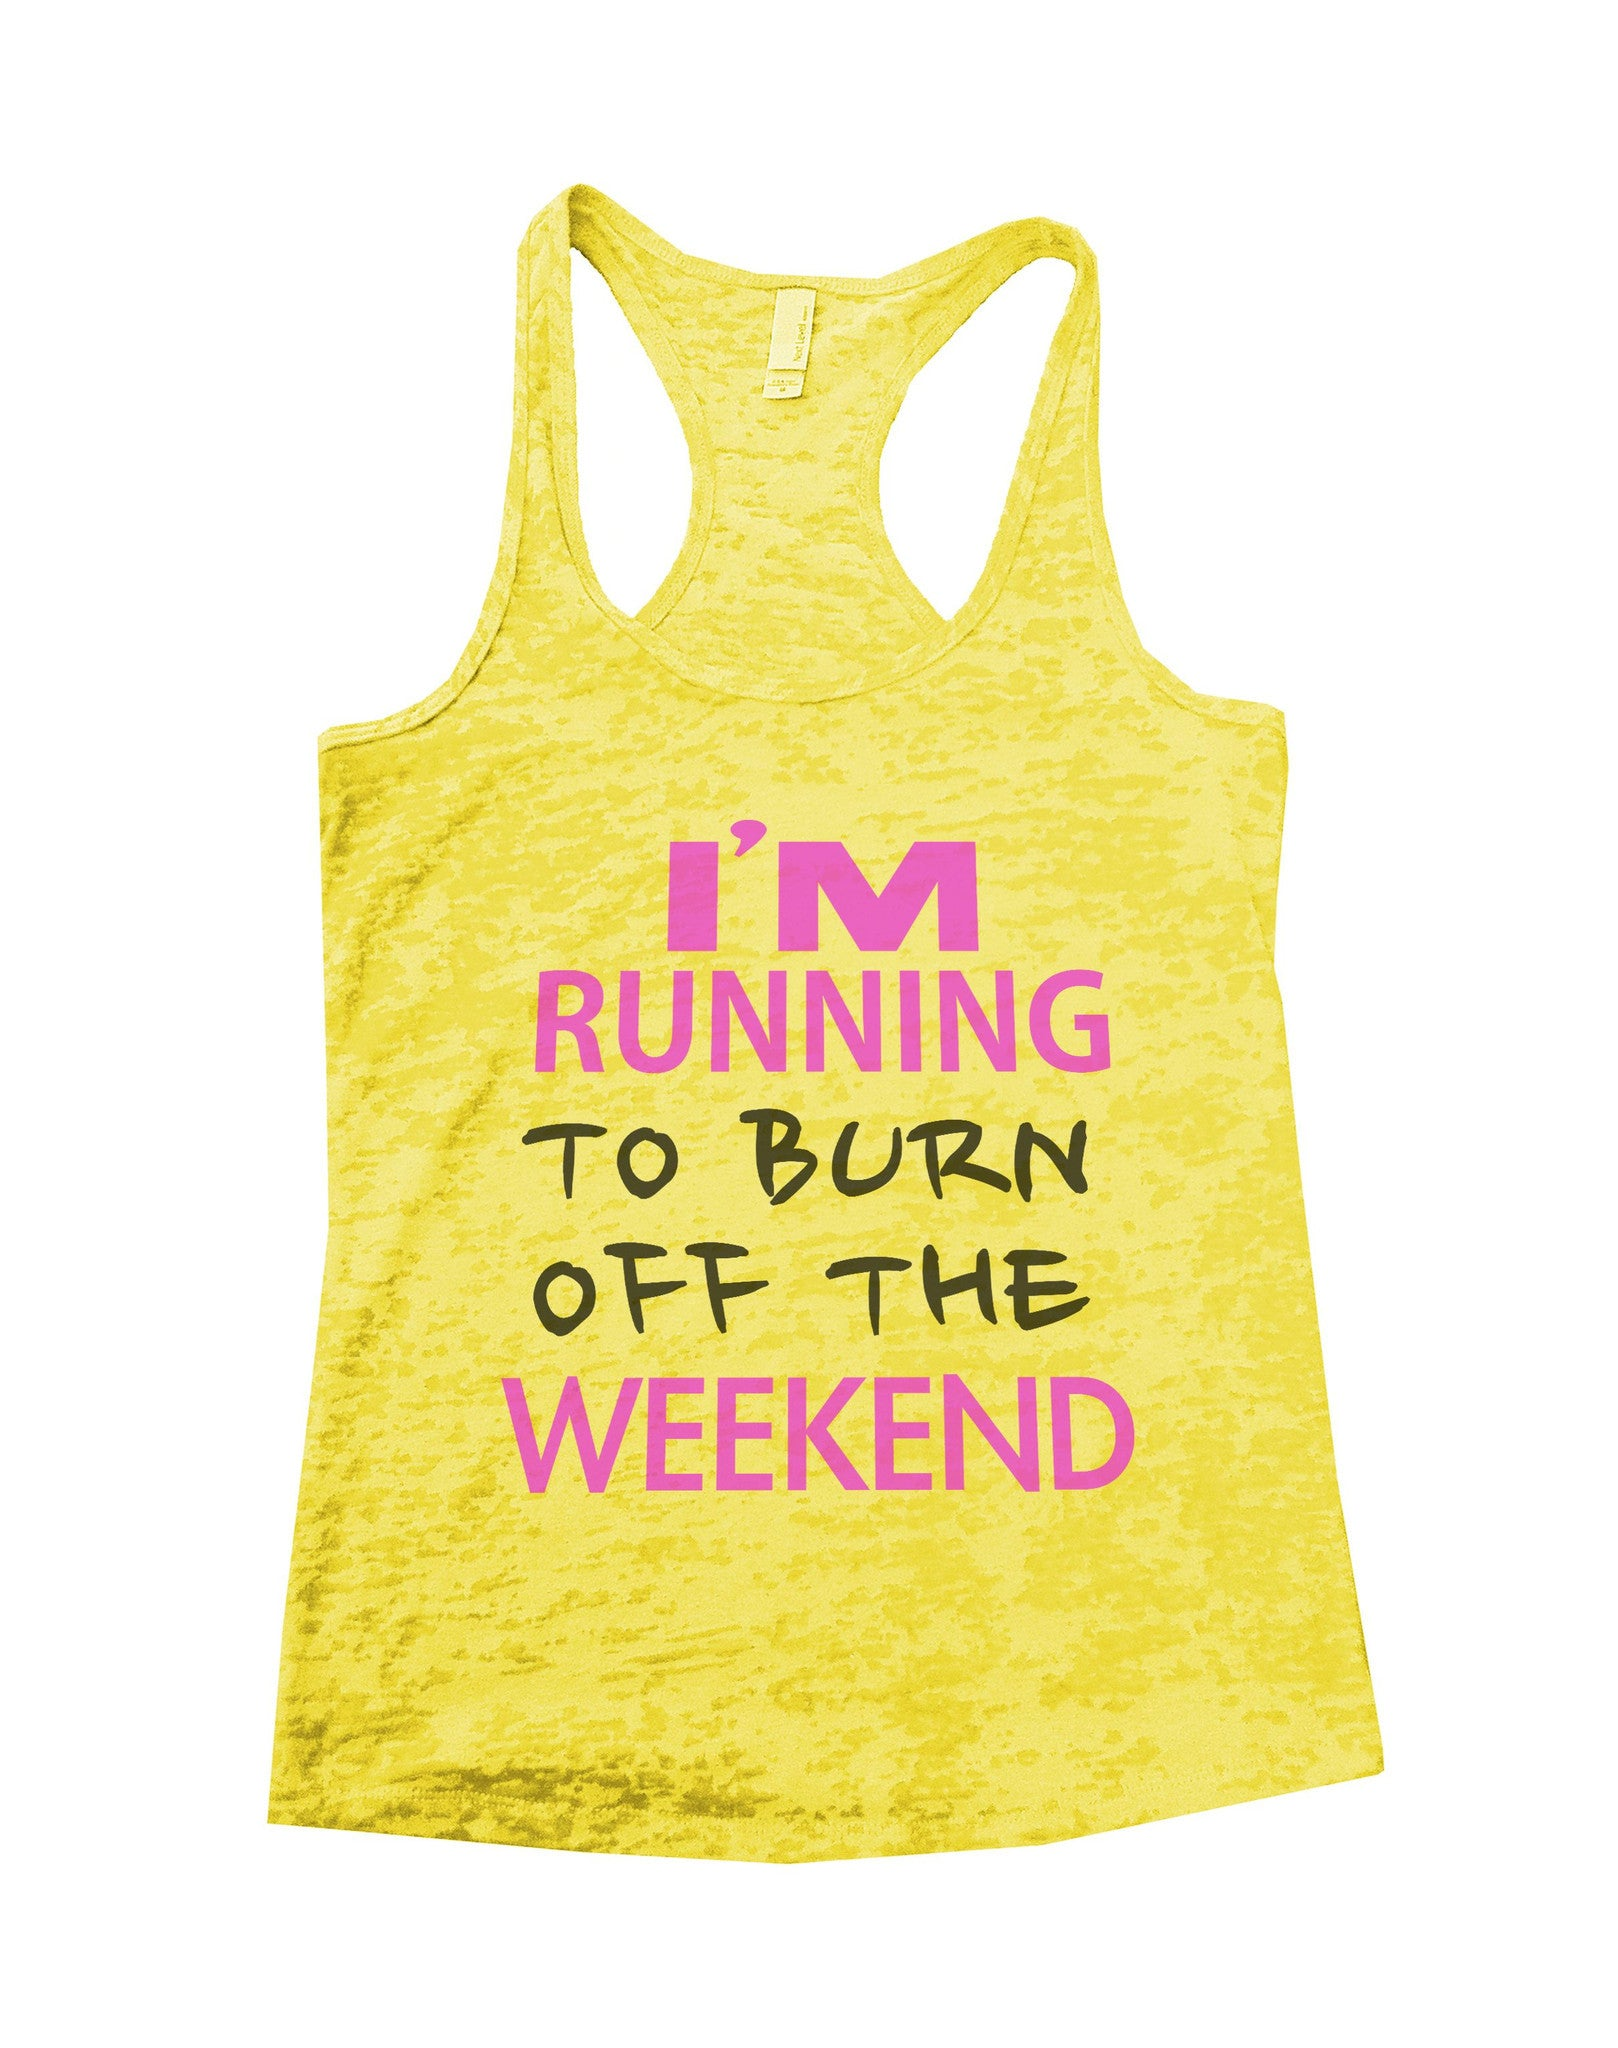 I'm Running To Burn Off The Weekend Burnout Tank Top By BurnoutTankTops.com - 660 - Funny Shirts Tank Tops Burnouts and Triblends  - 3